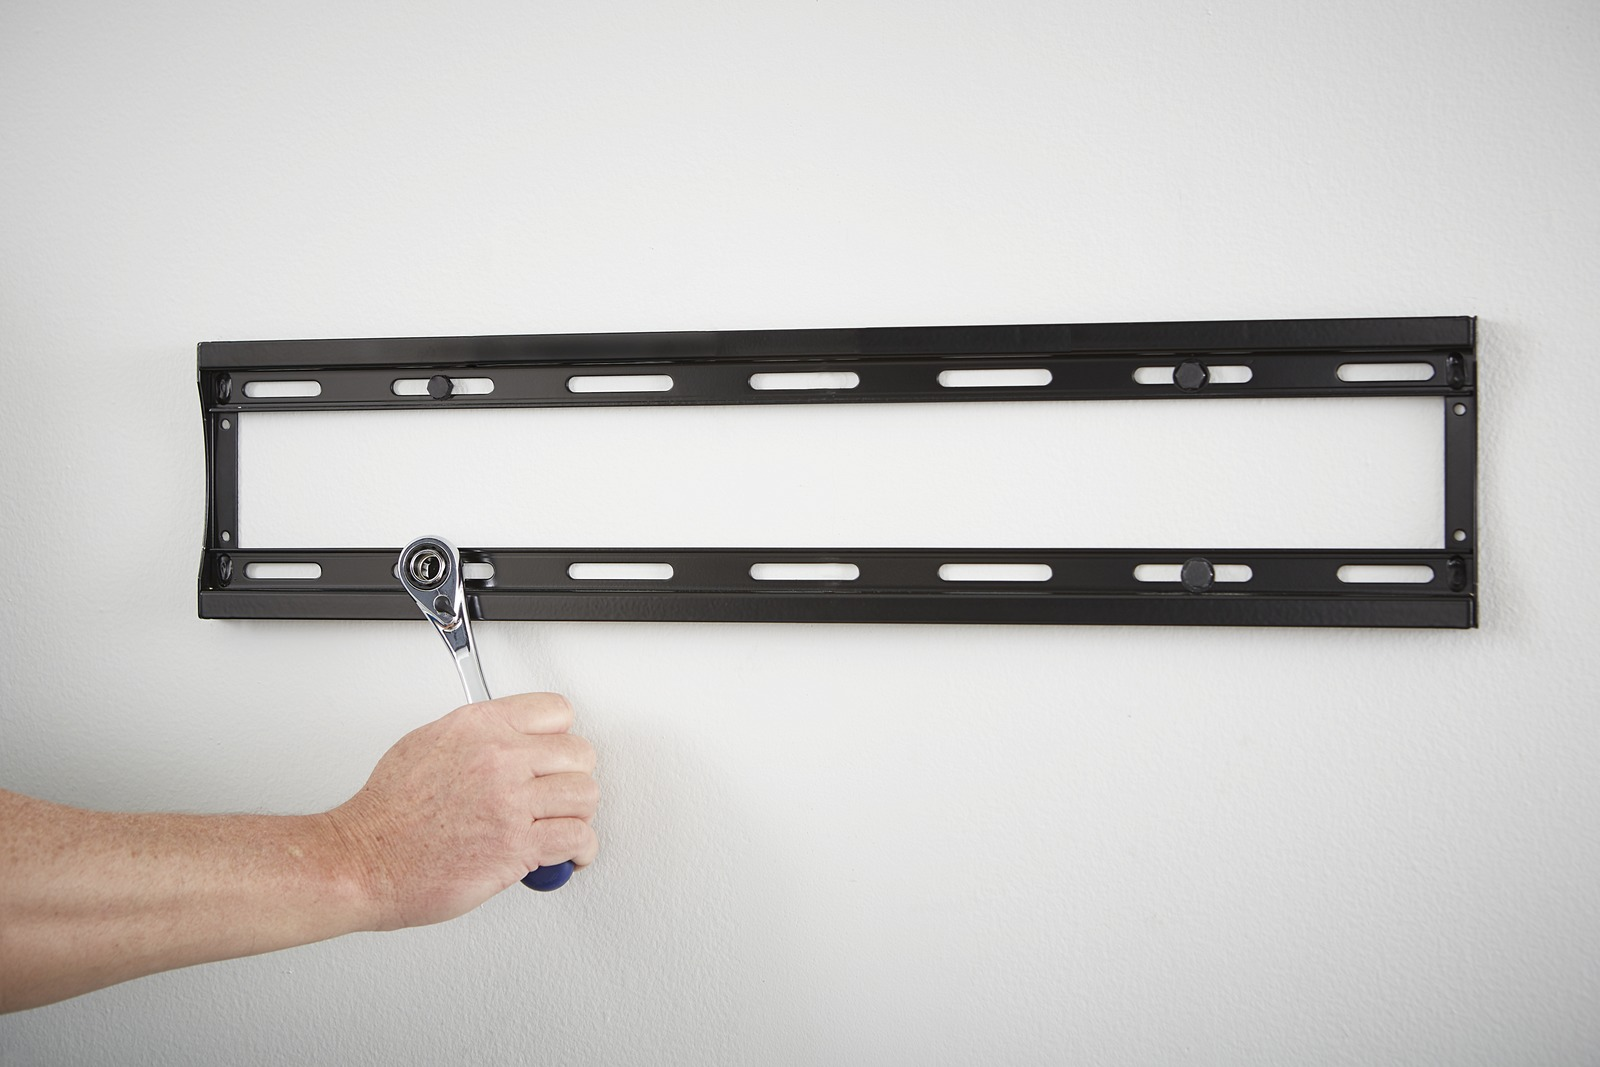 Mounting a TV - Attach Wall Plate to Wall